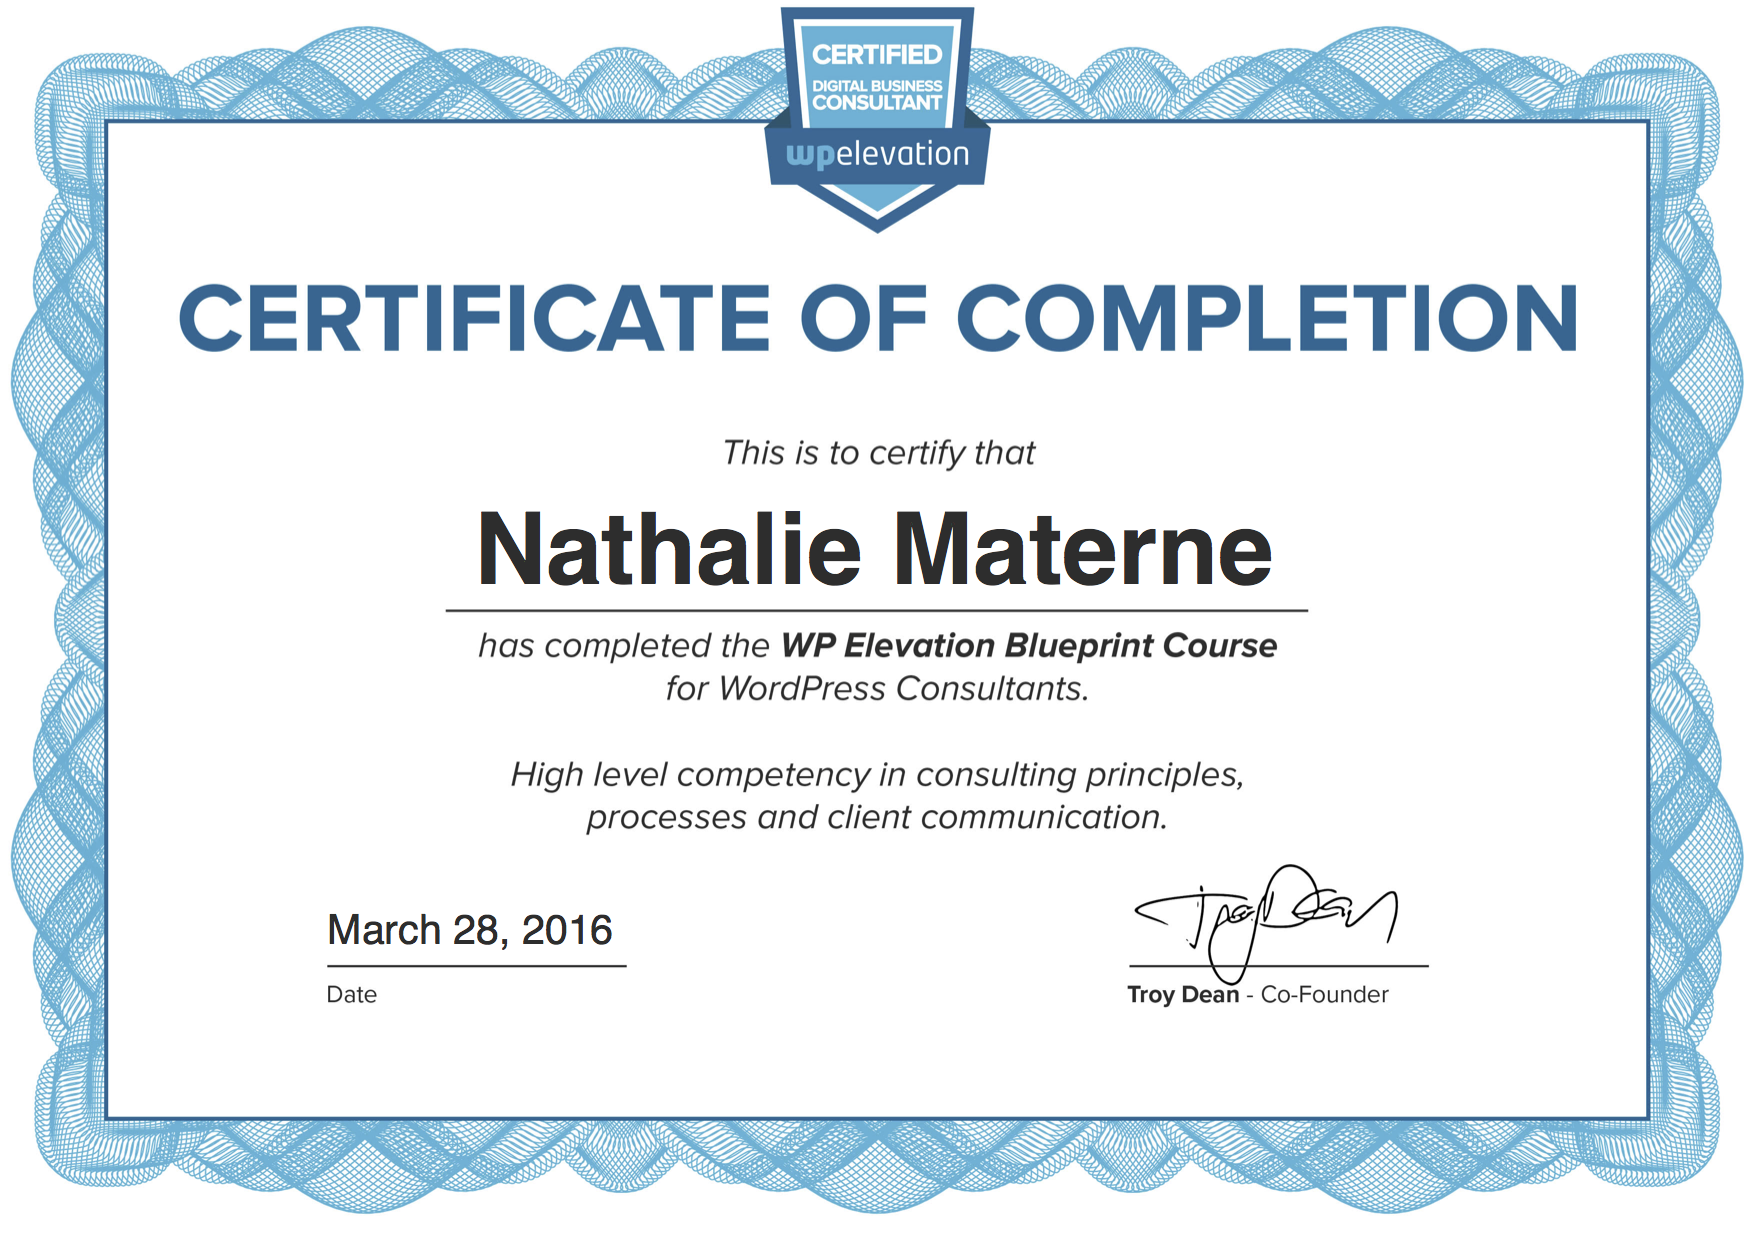 certificate-wp-elevation-blueprint-course